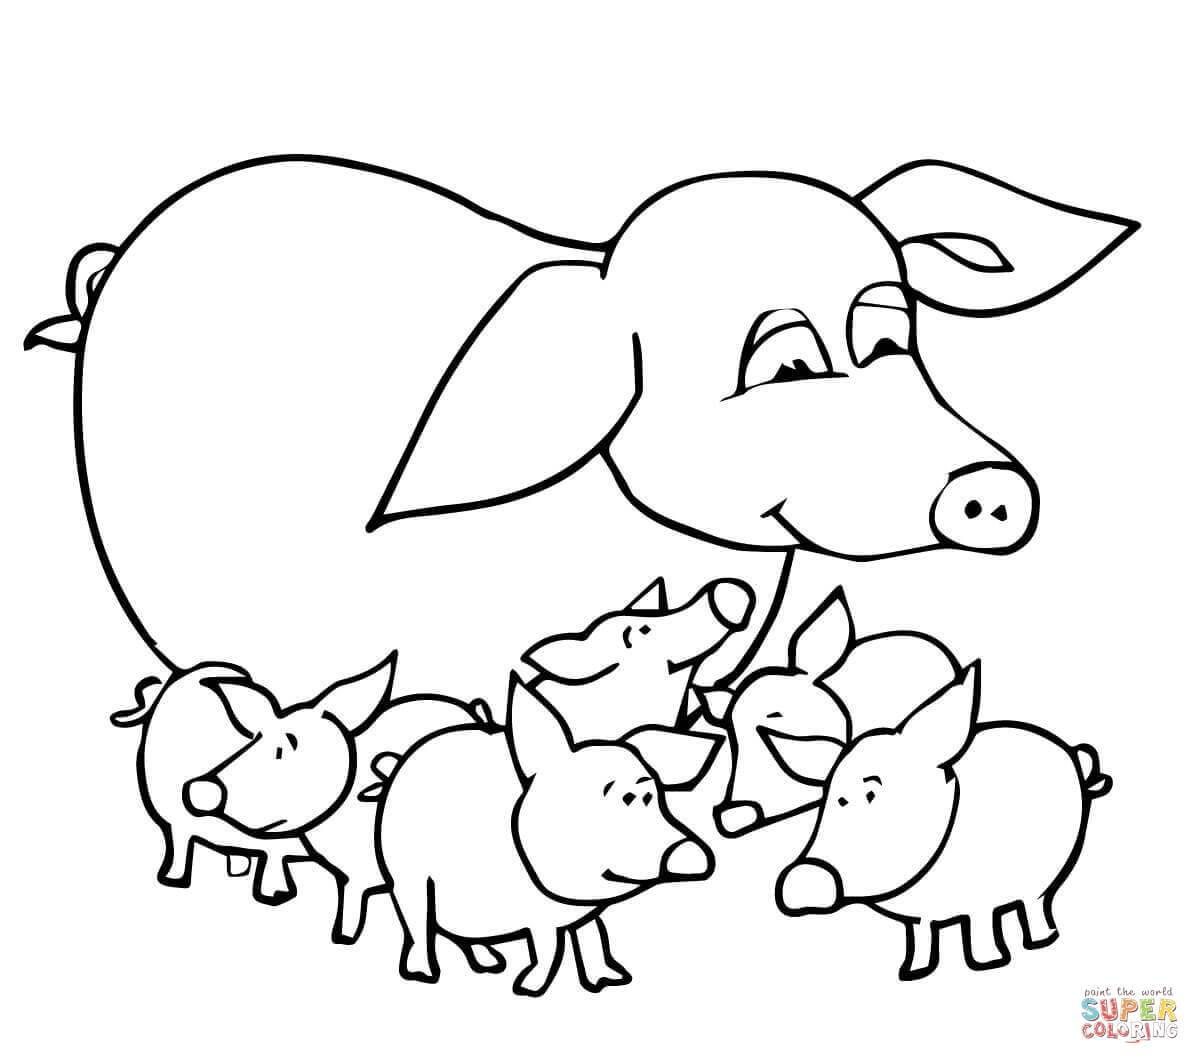 Mommy animal with their baby clipart black and white png transparent download Mother and baby animals clipart black and white 5 » Clipart ... png transparent download